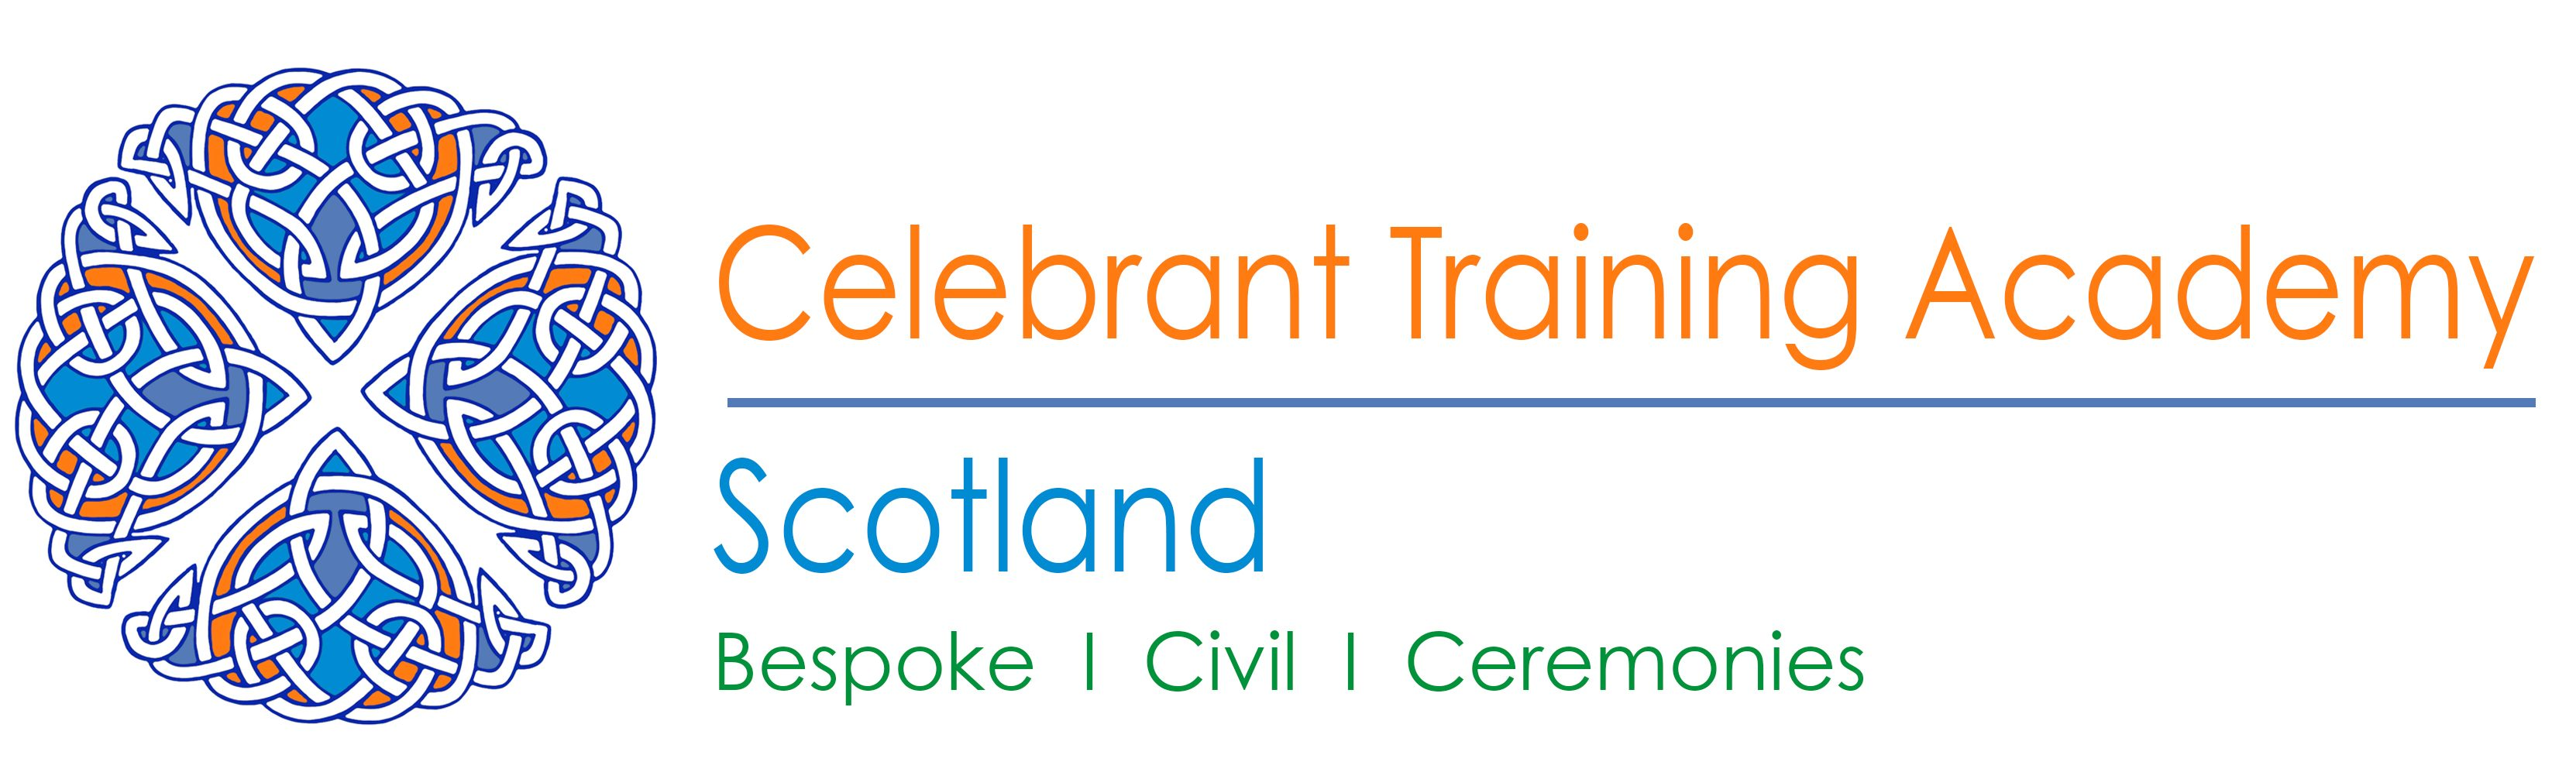 Celebrant Training Academy Scotland